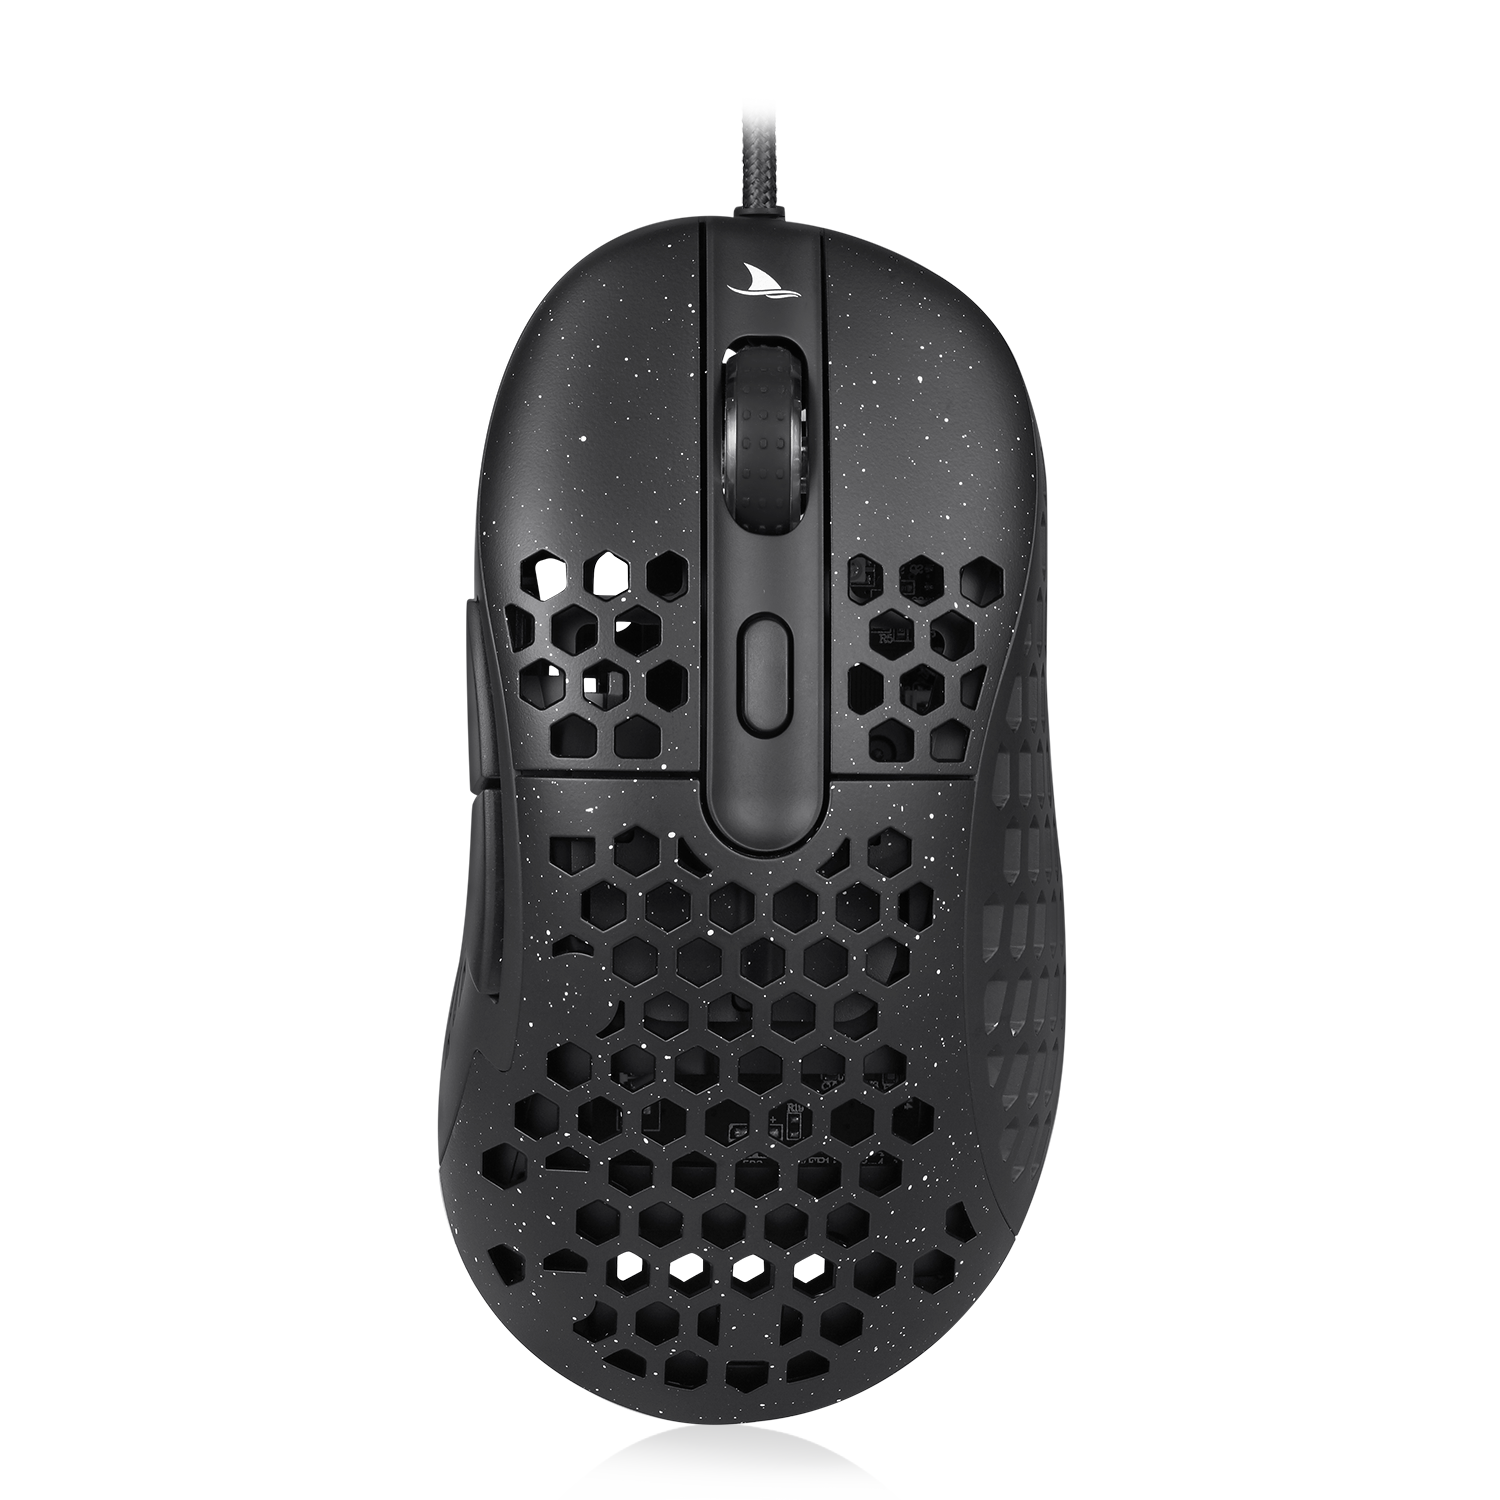 Mouse Gamer Motospeed Darmoshark N1 Zeus6400 Essential Black